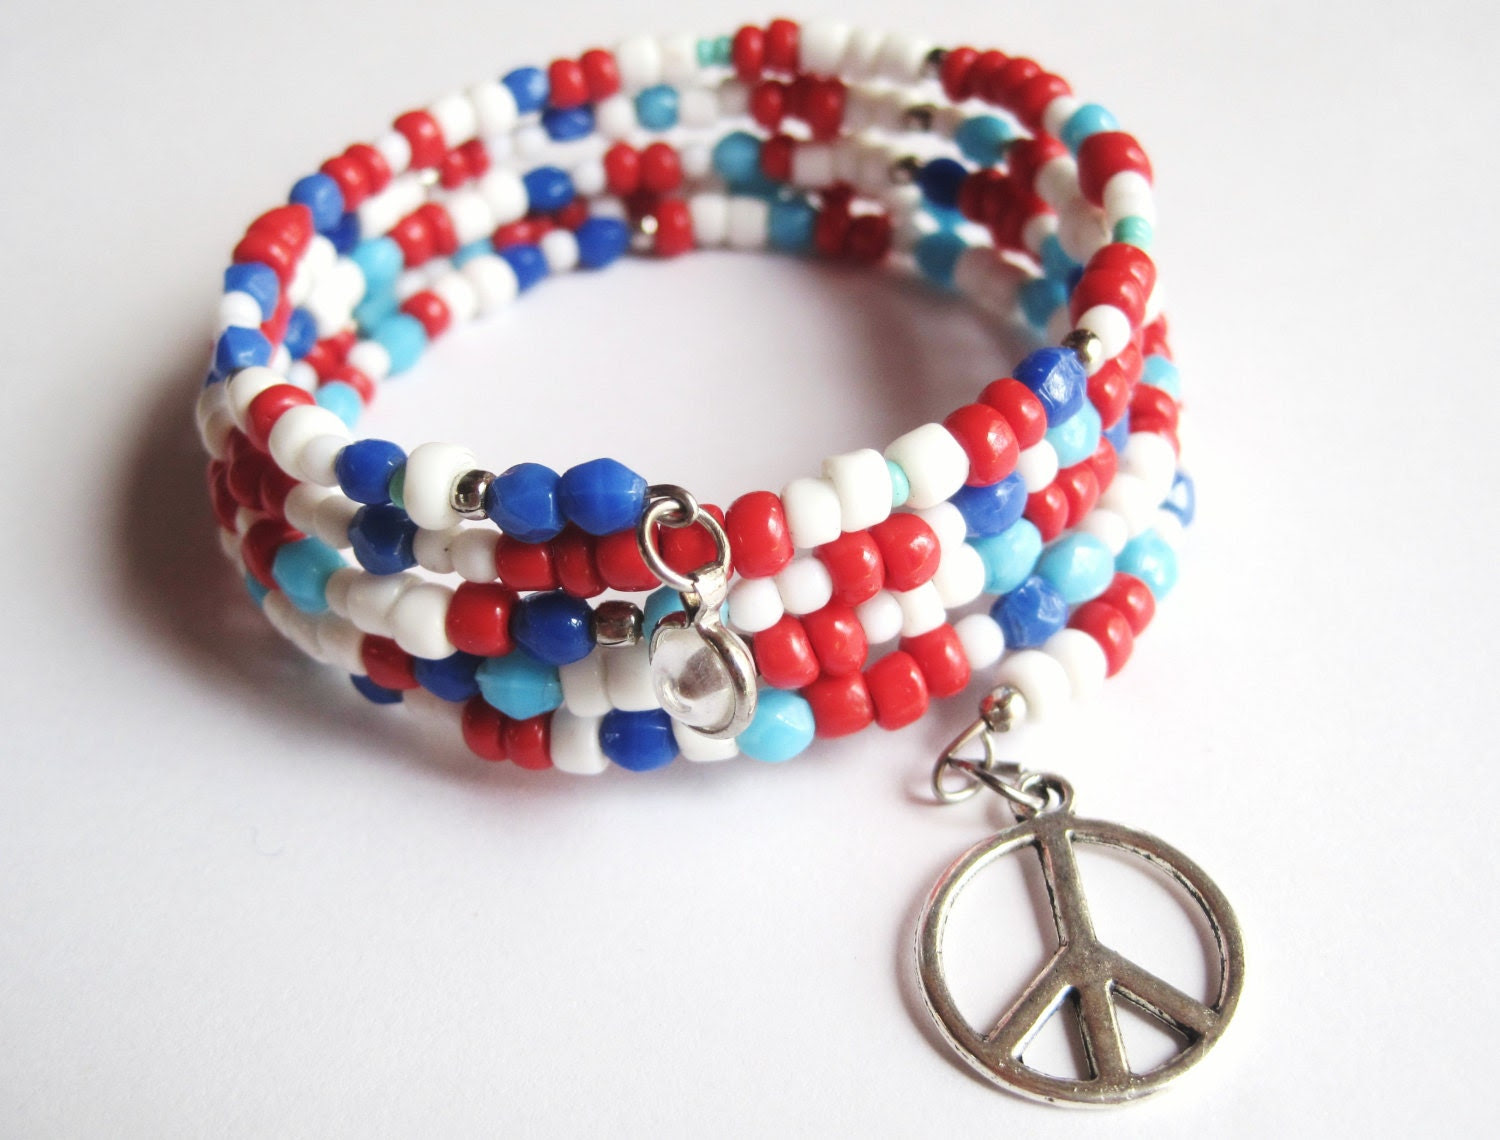 "Bracelet - Memory Bracelet - Red, Turquoise, White and Royal Blue - Peace - ""What Is So Wrong"" - jHenSunshine"